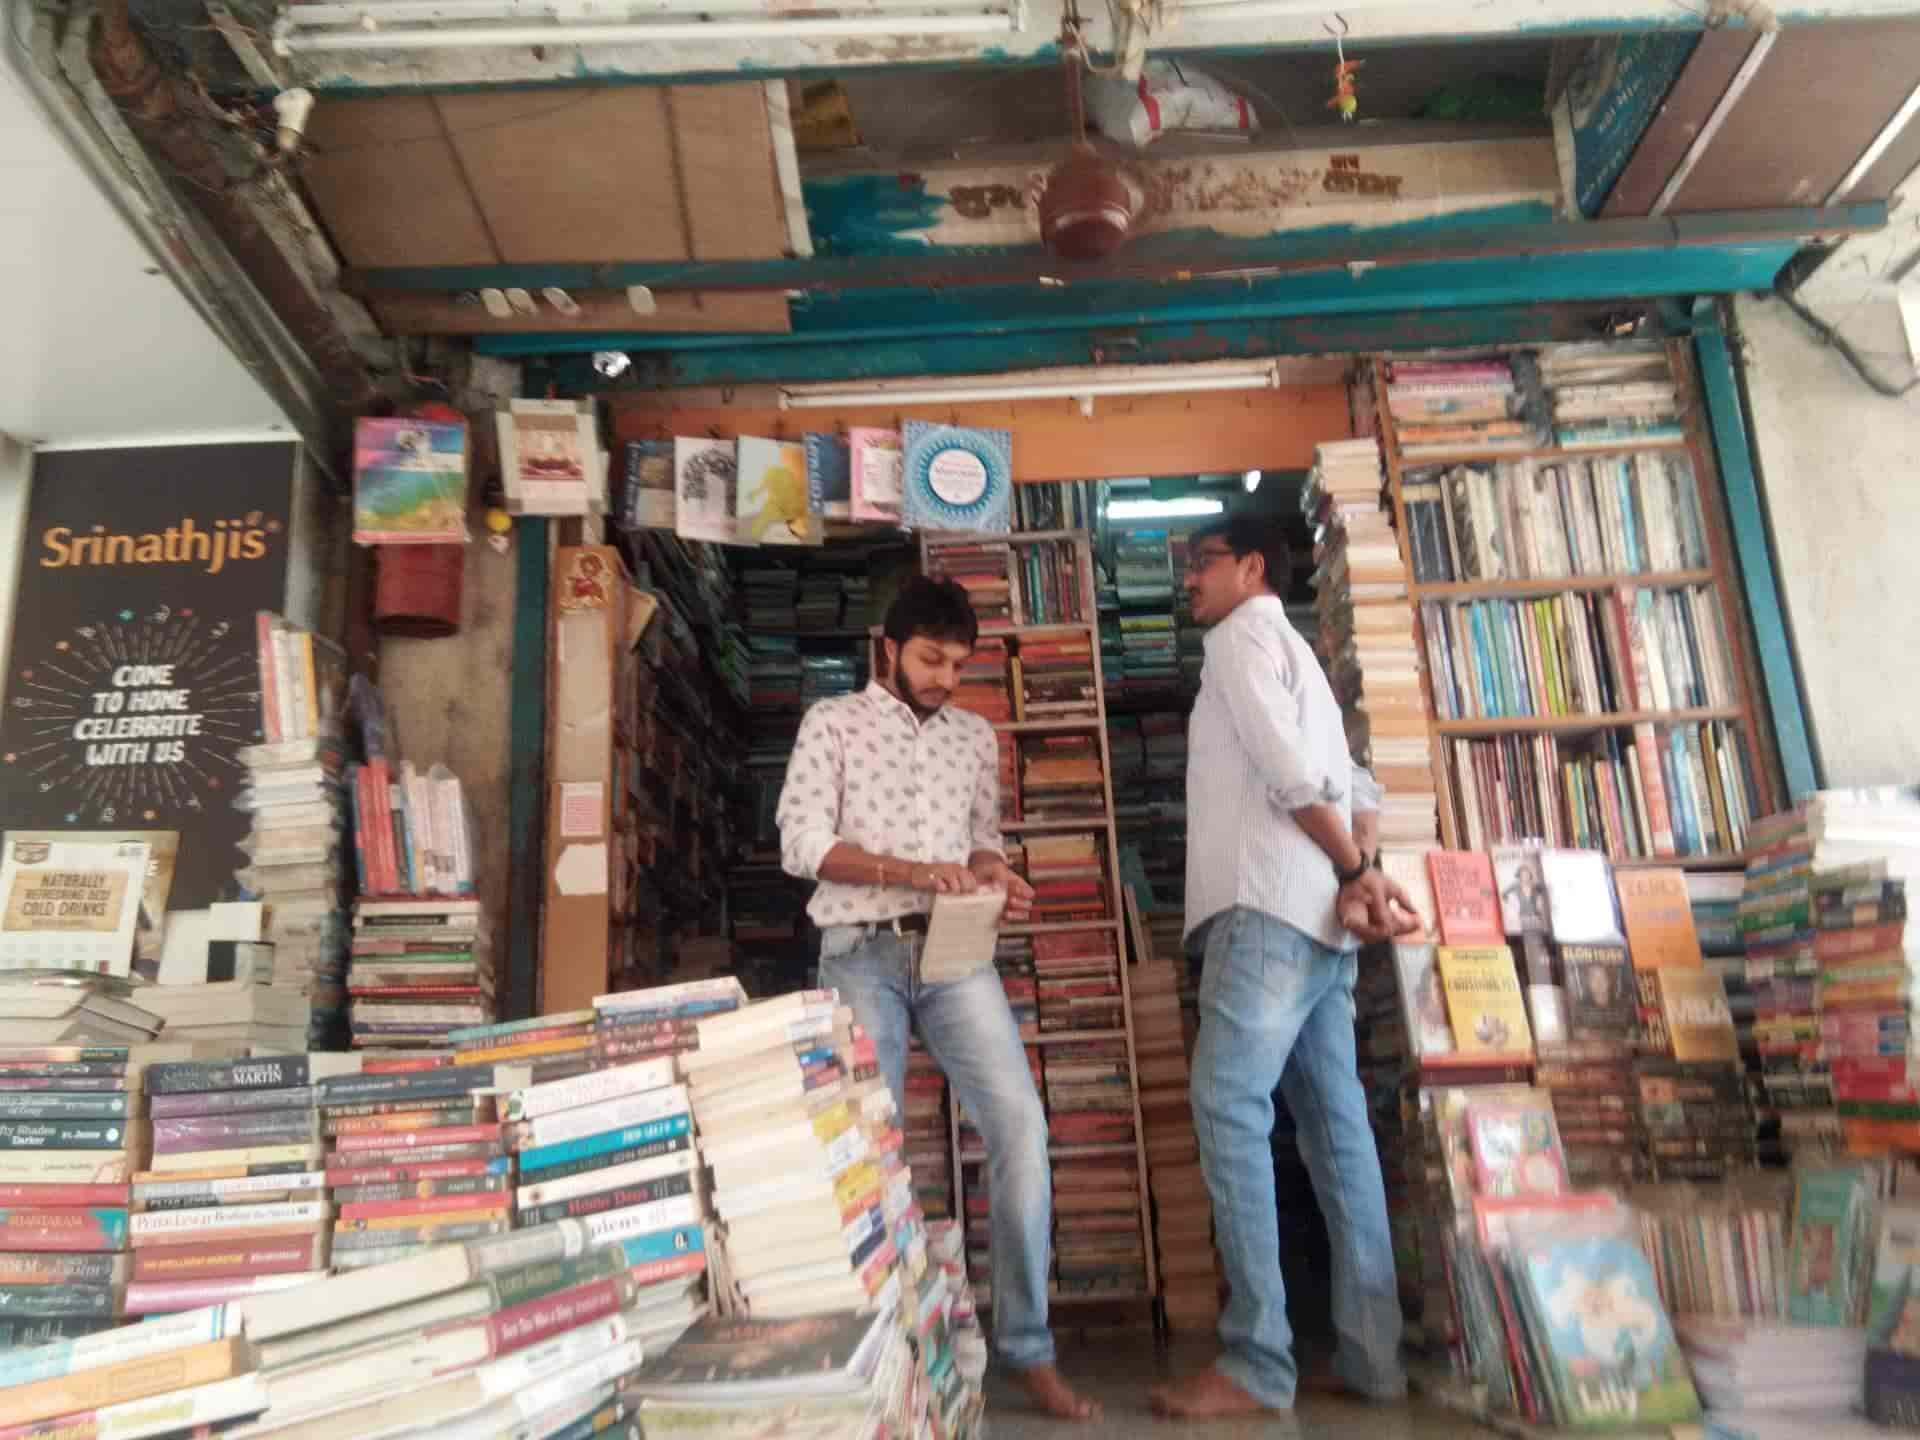 Pethani Book Centre, Vile Parle West - Book Shops in Mumbai